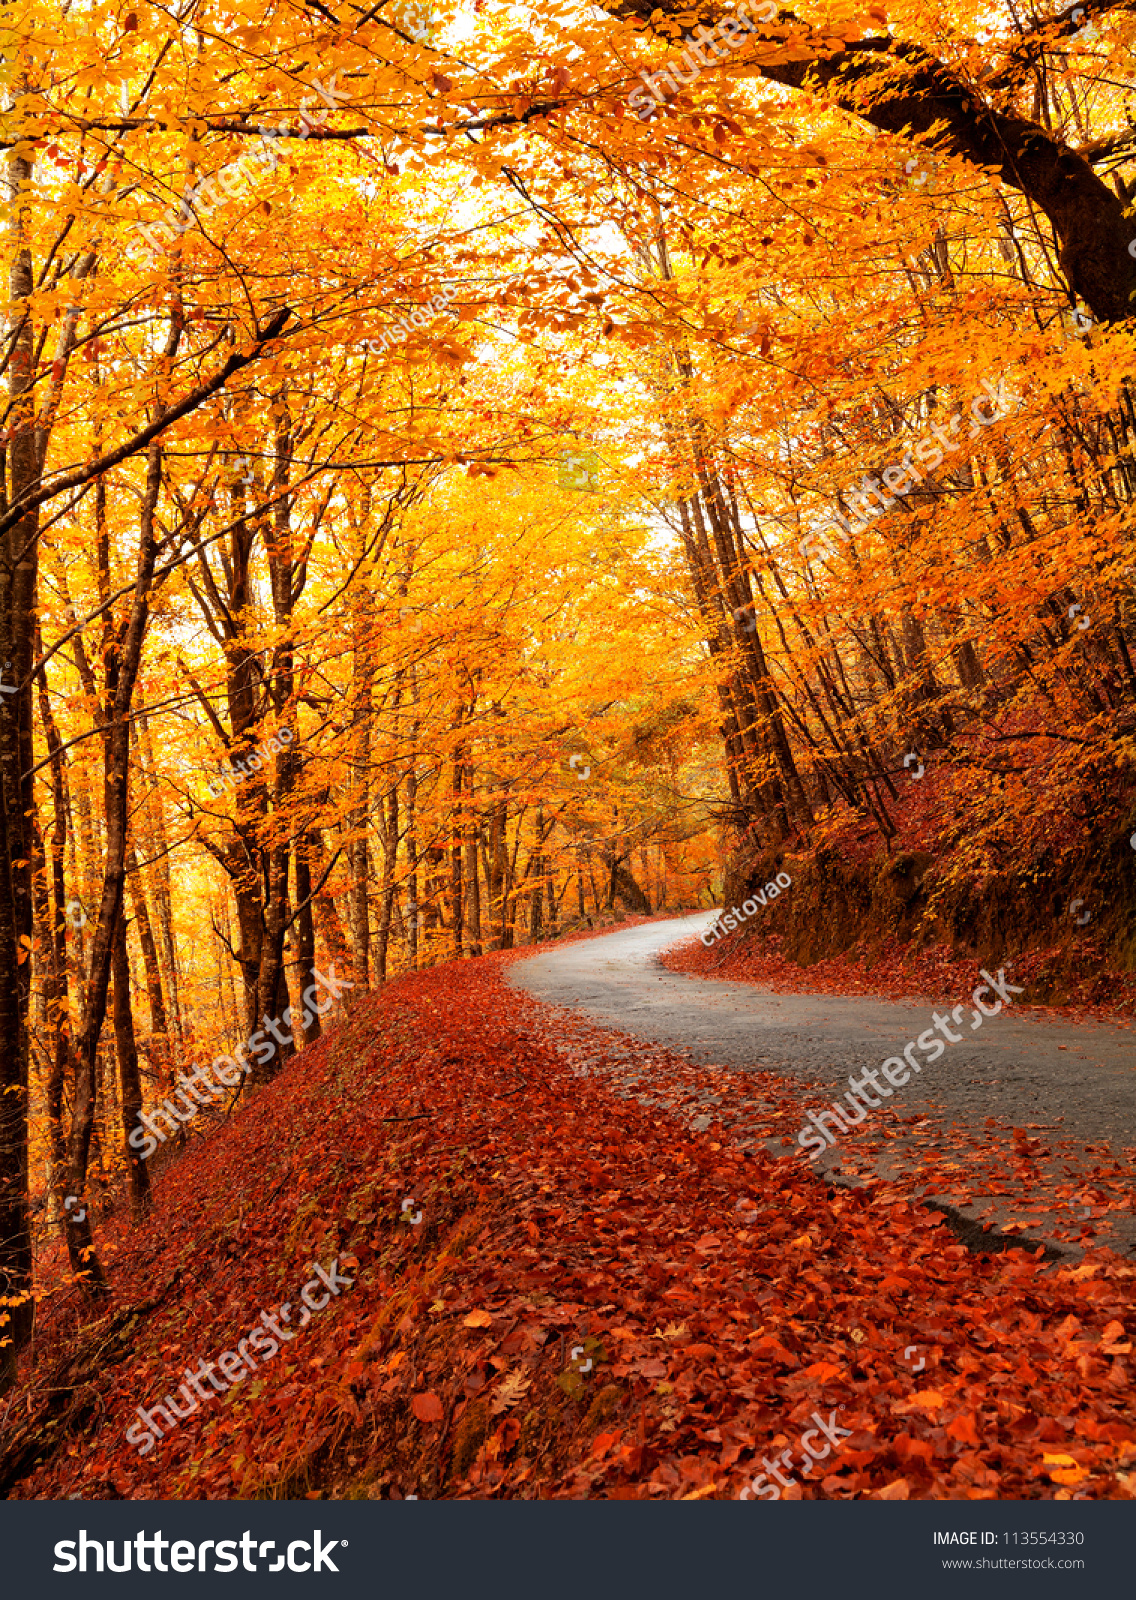 Autumn Landscape With Road And Beautiful Colored Trees ...